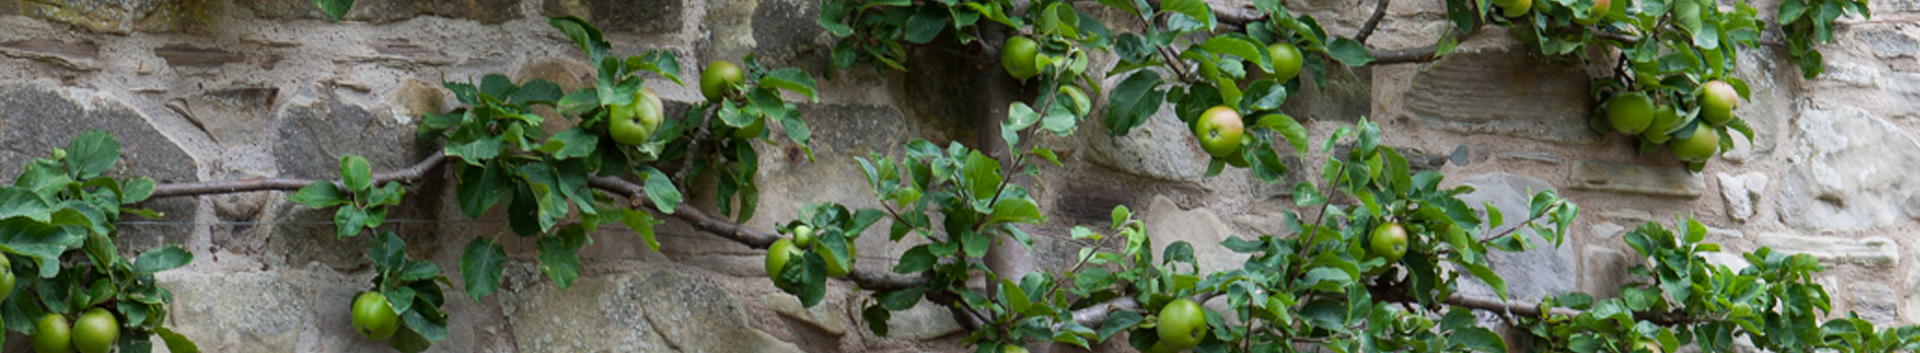 Gallery - espaliered apple tree along a stone wall